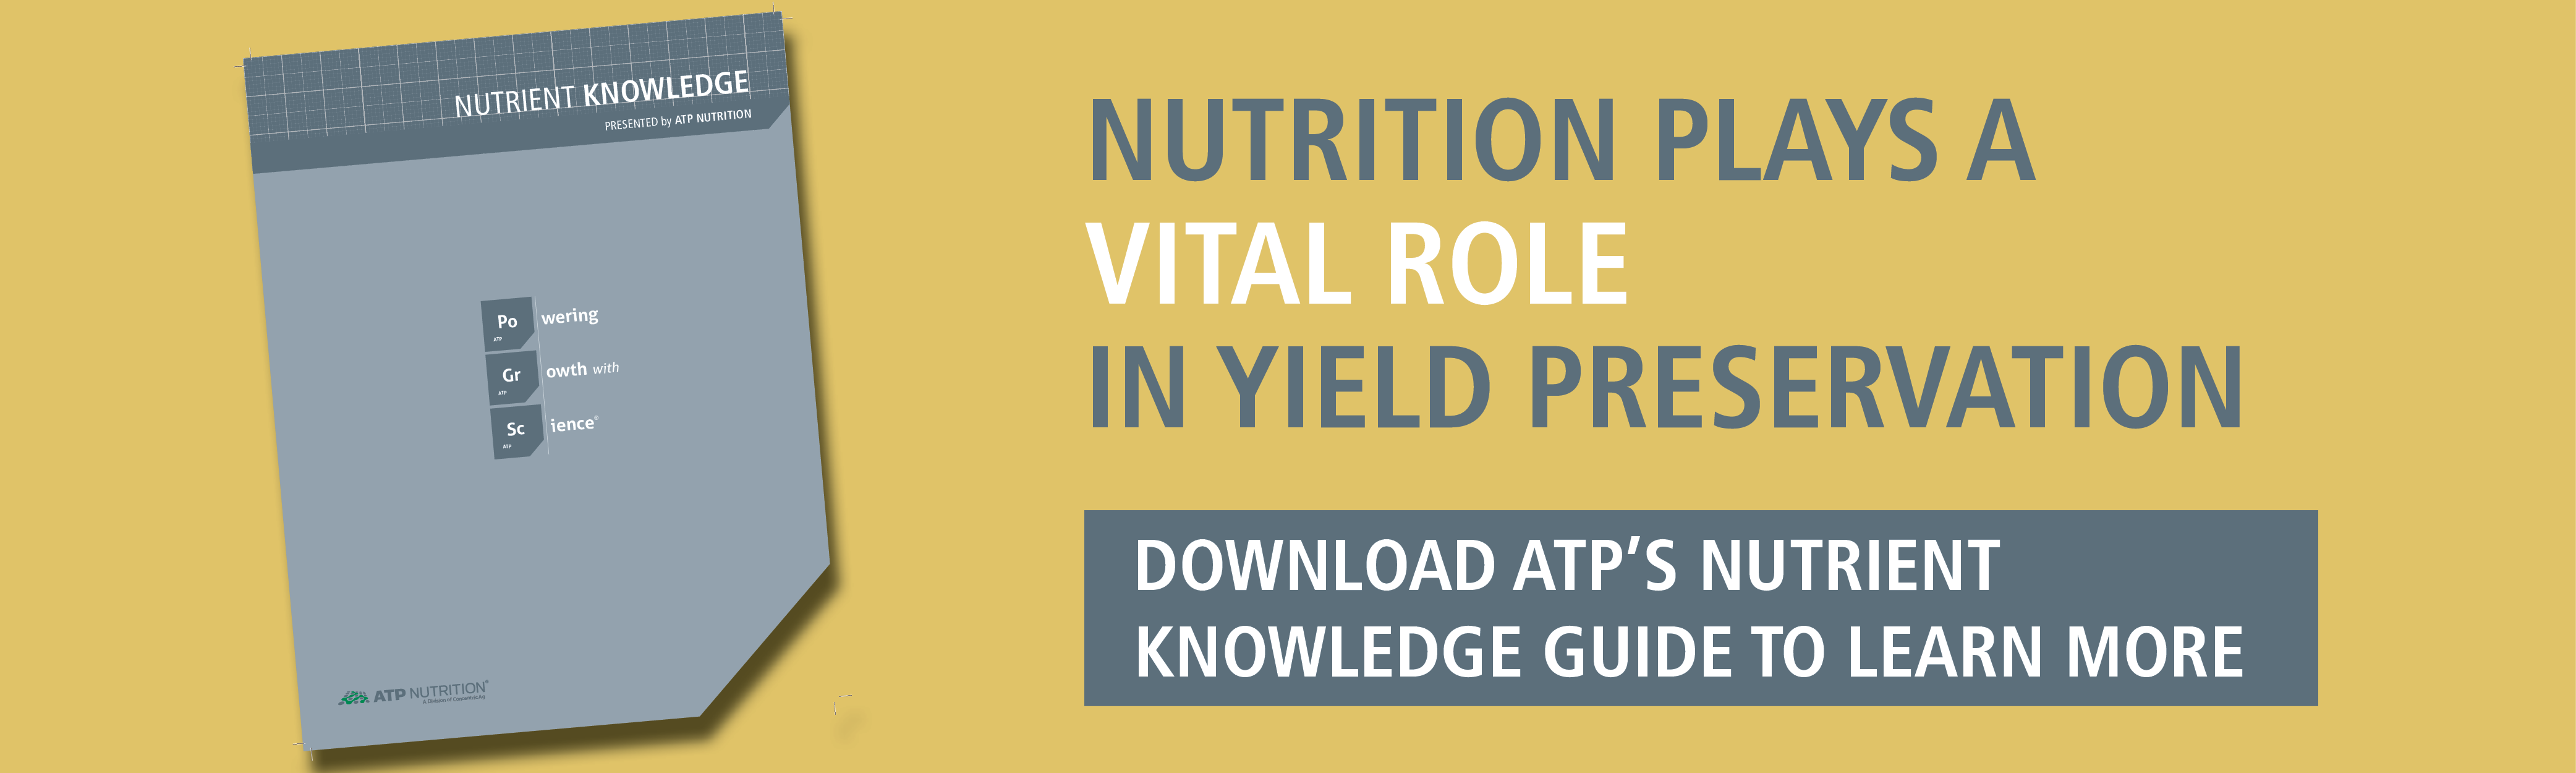 Nutrient Knowledge Guide CTA